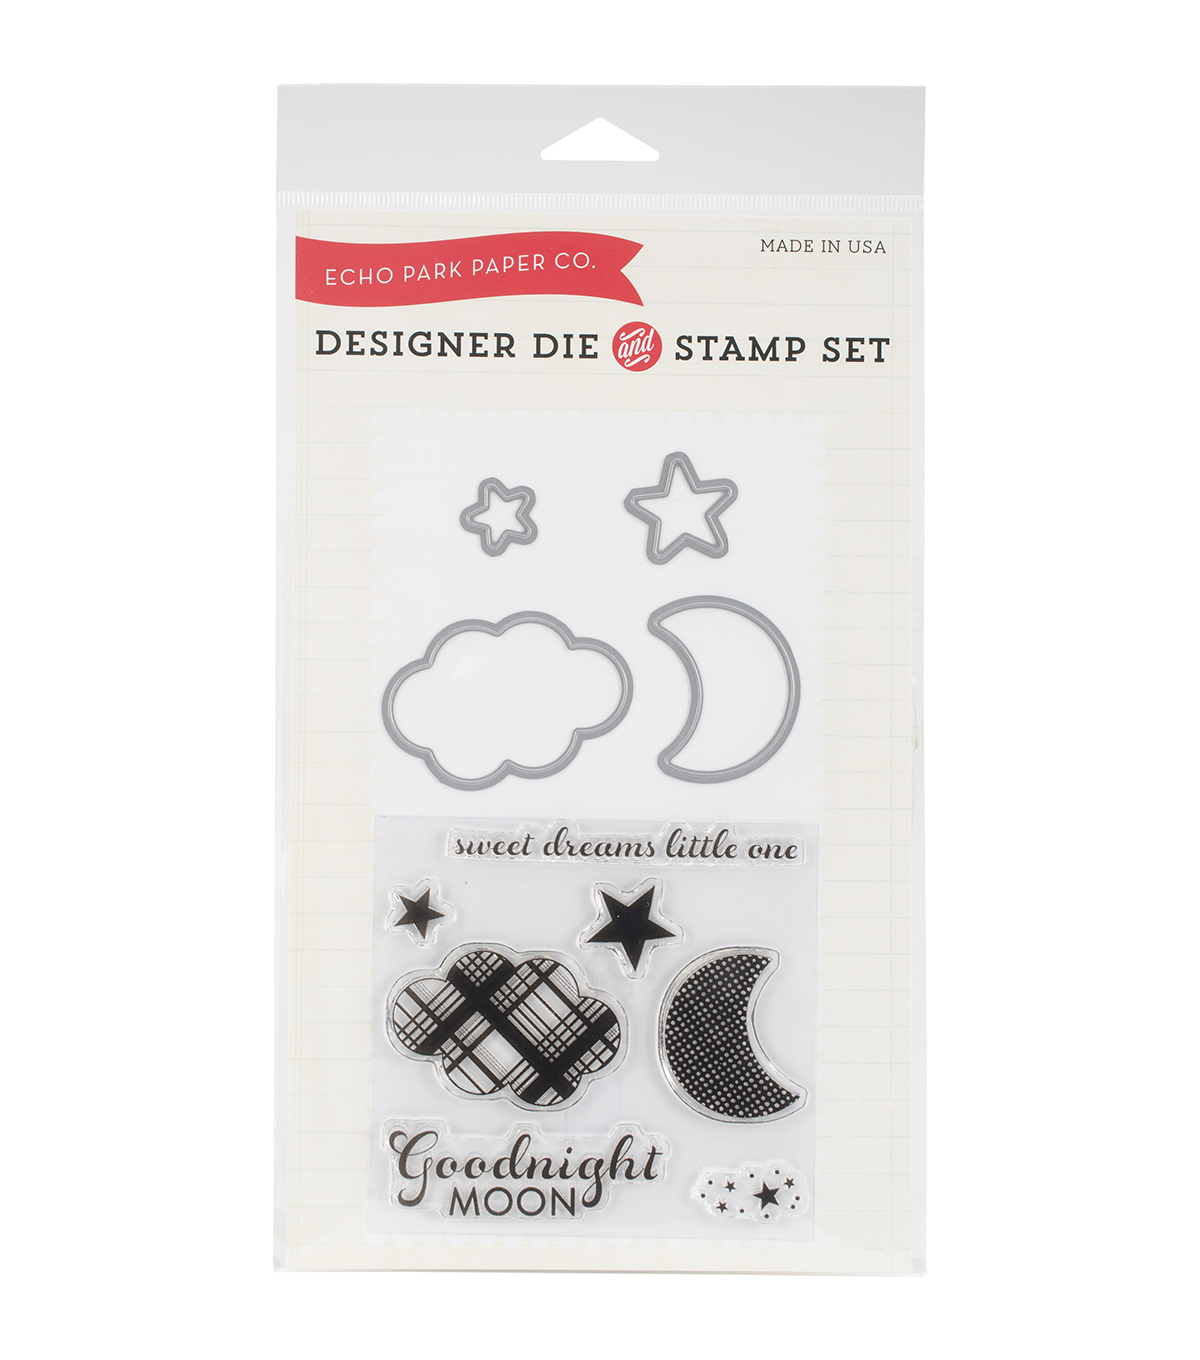 Echo Park Paper Company Goodnight Moon Die & Stamp Combo Set